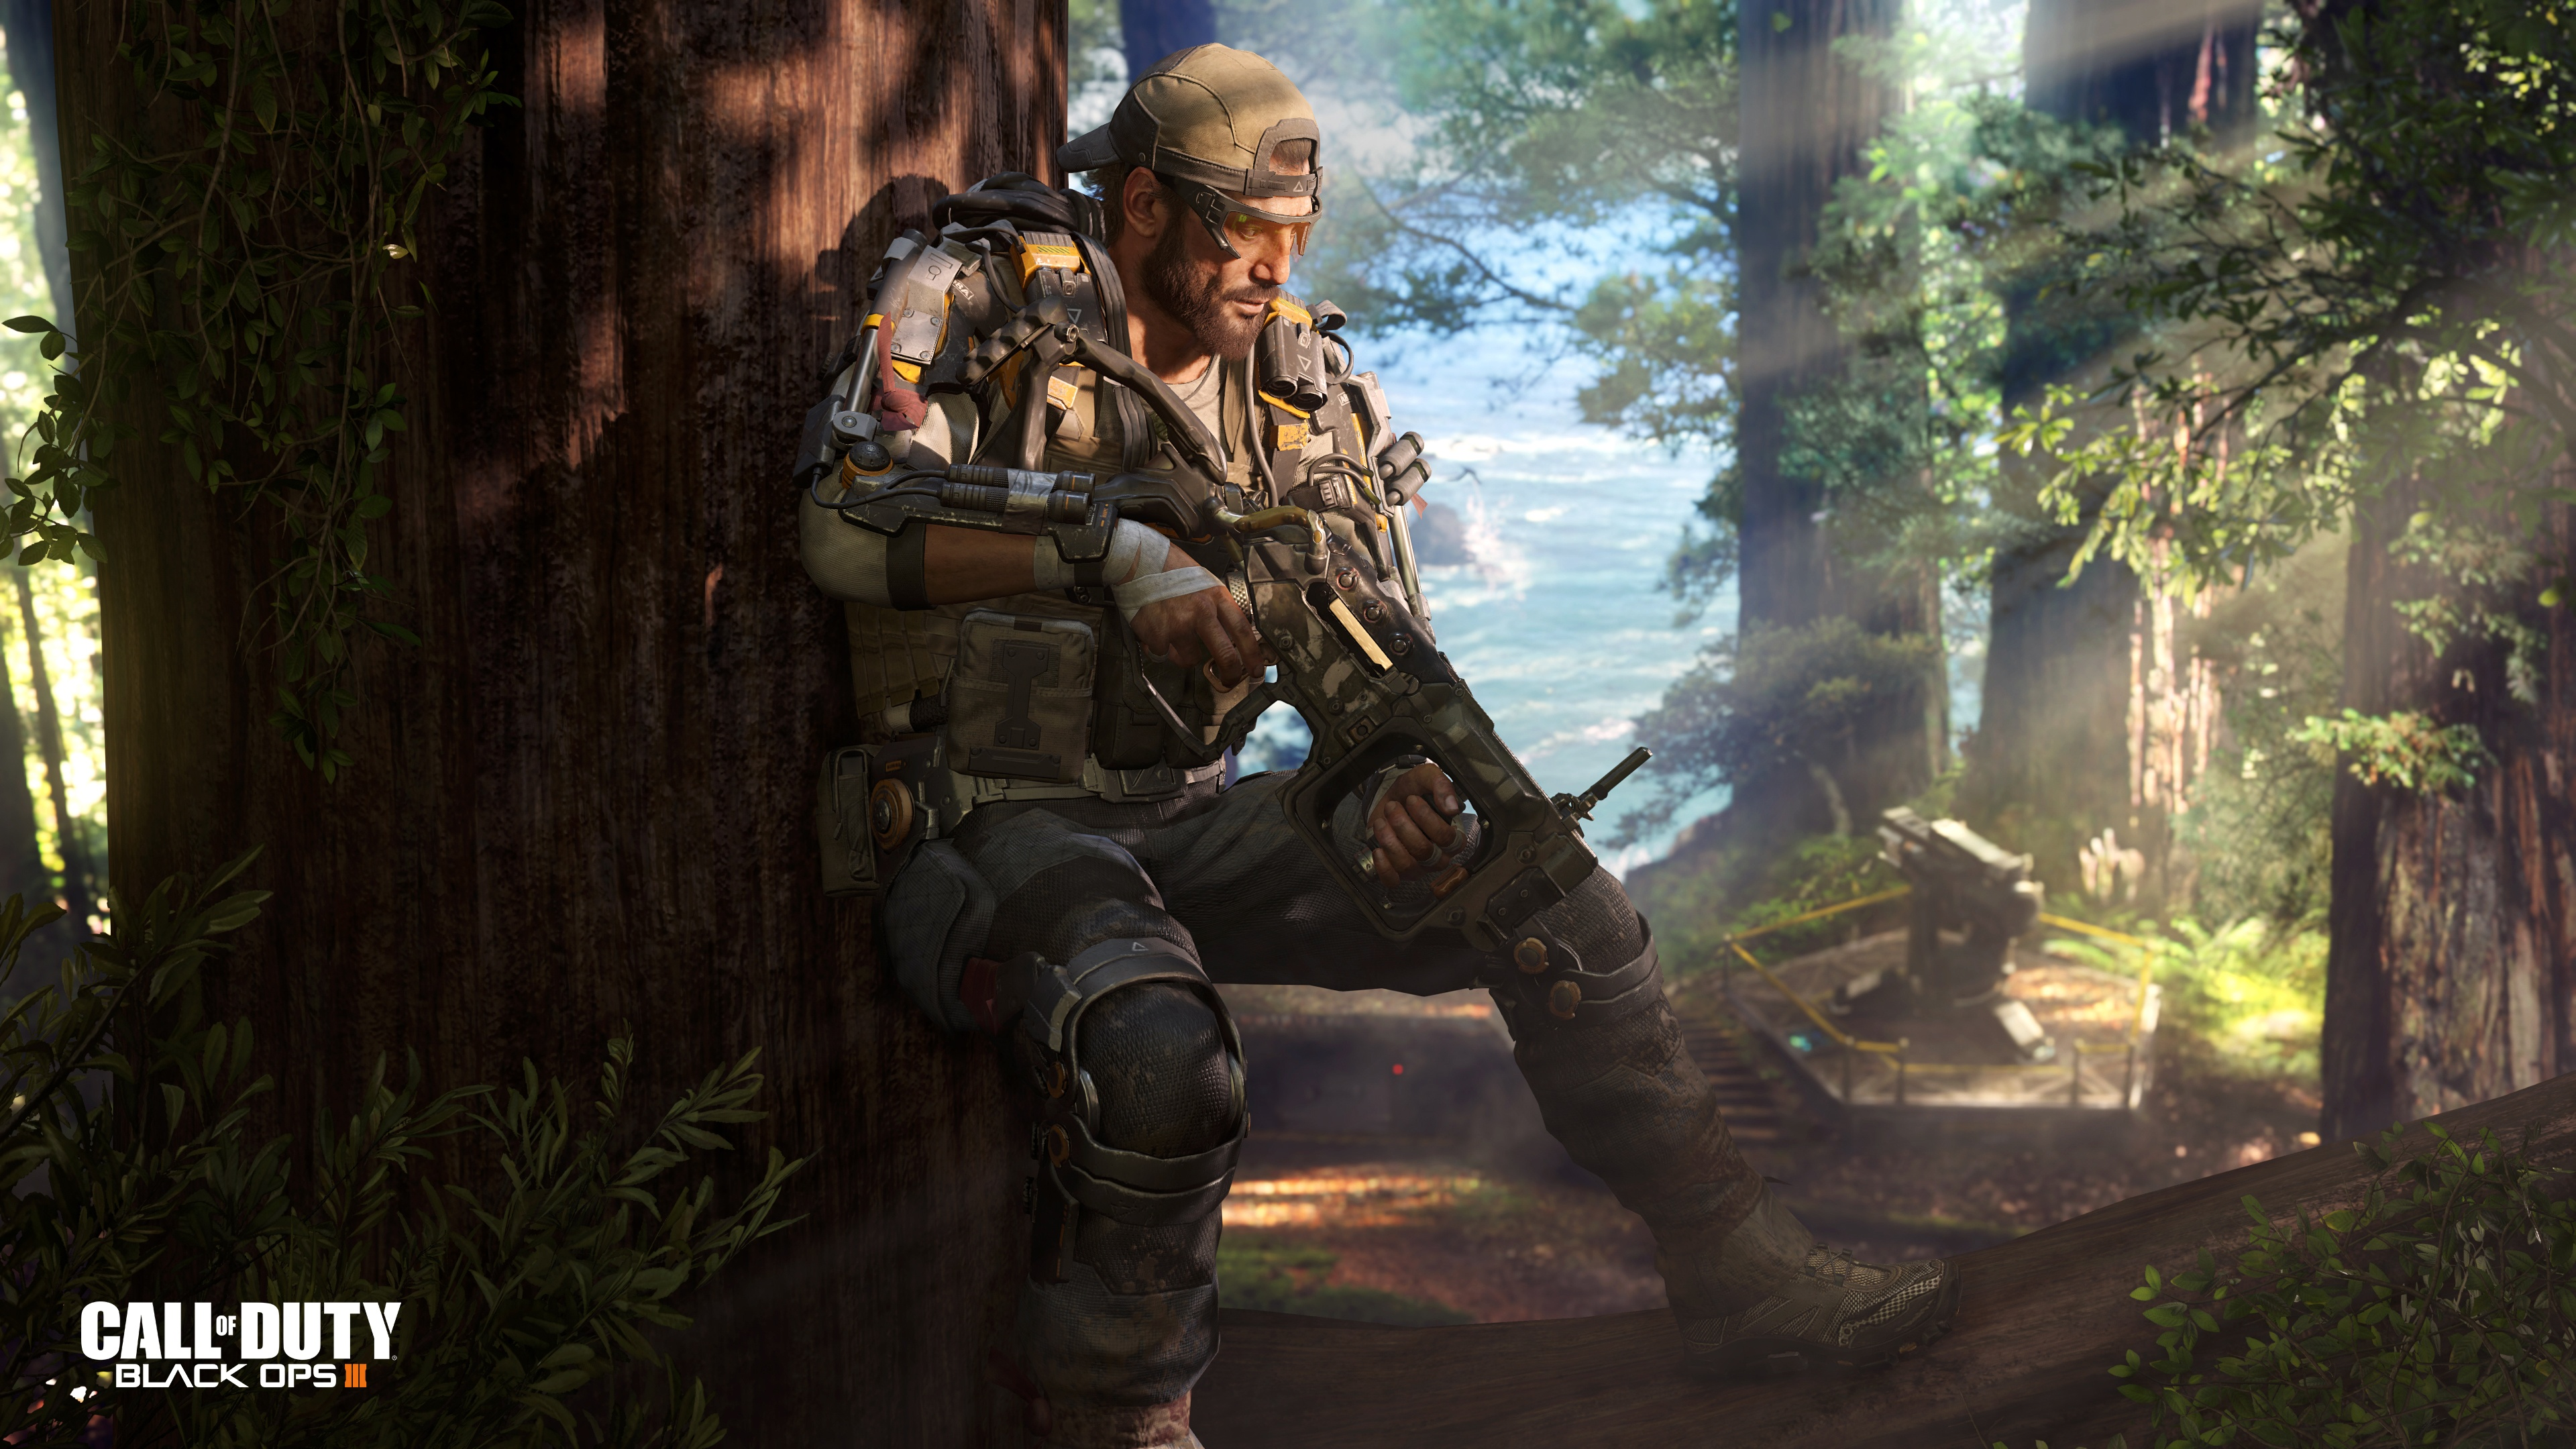 call of duty black ops 3 free download for pc